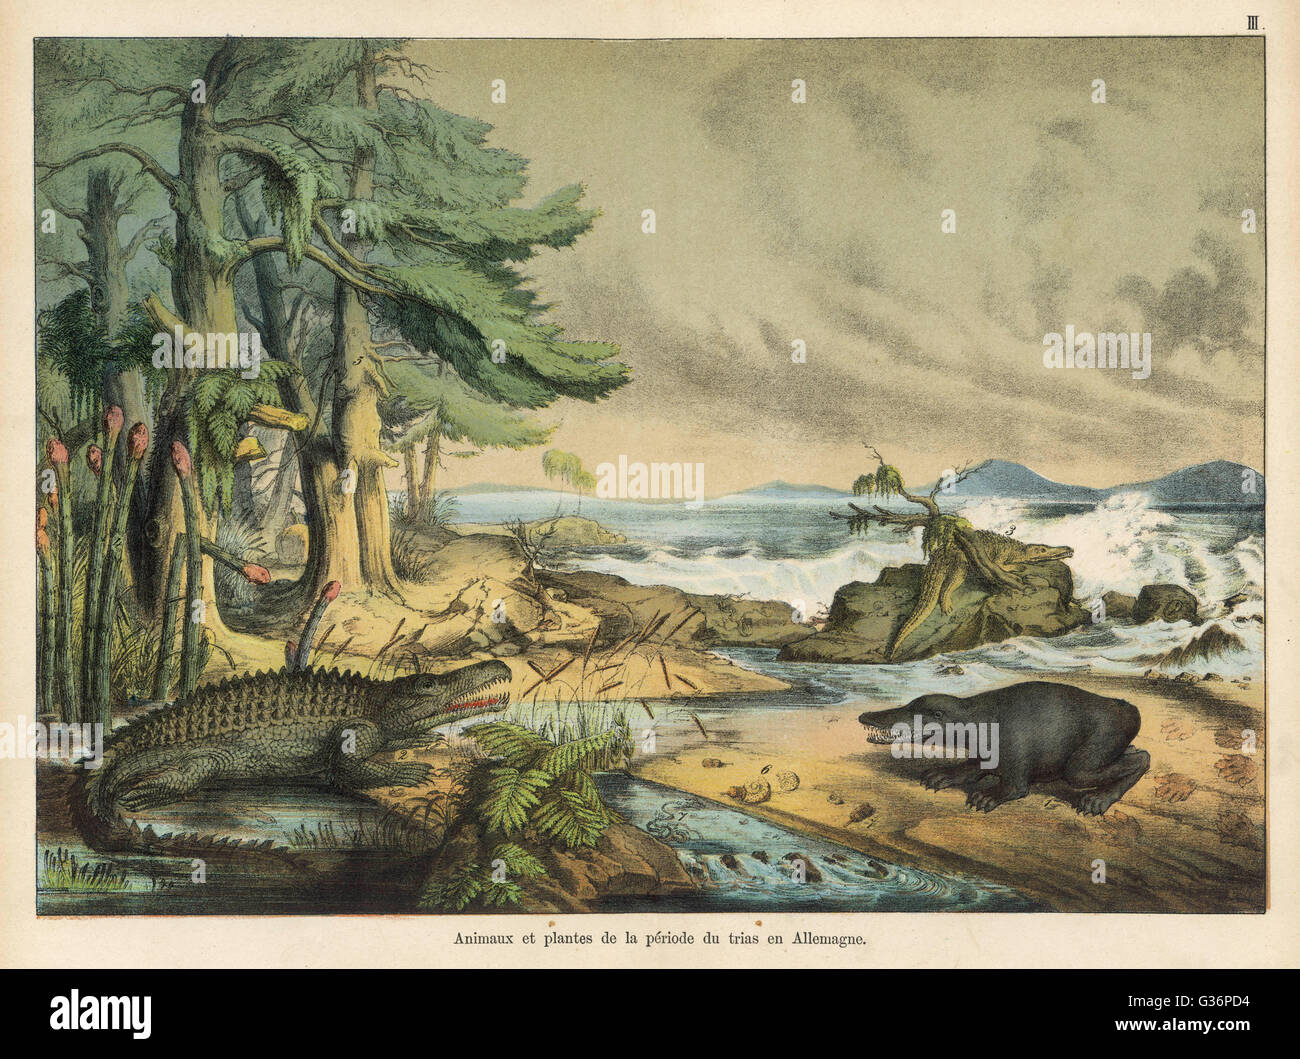 Animals and plants of the Triassic era in Germany.          Date: BCE - Stock Image